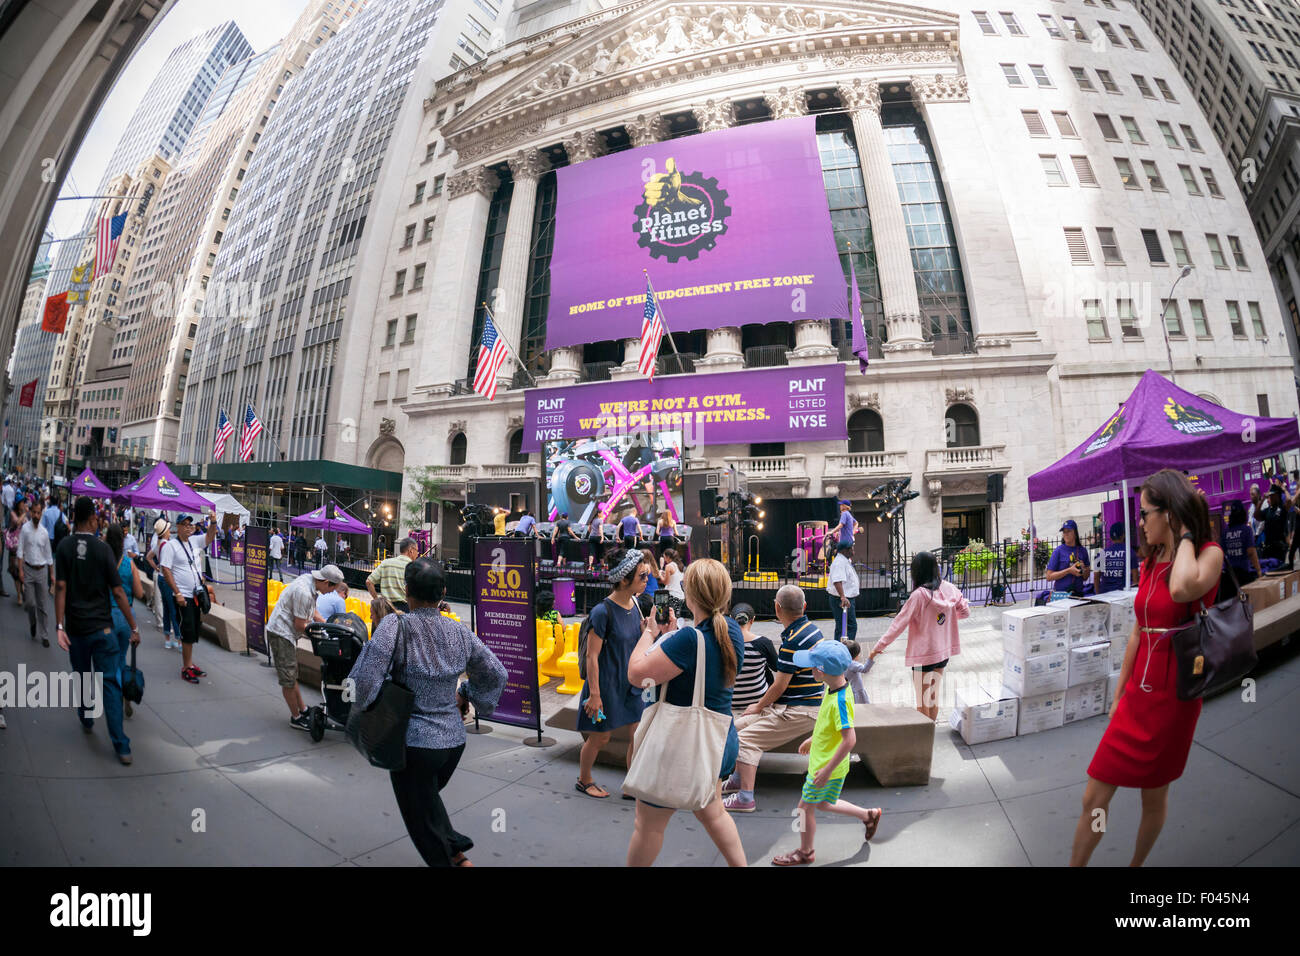 New York, USA. 6th Aug, 2015. The New York Stock Exchange is decorated for the Planet Fitness initial public offering - Stock Image